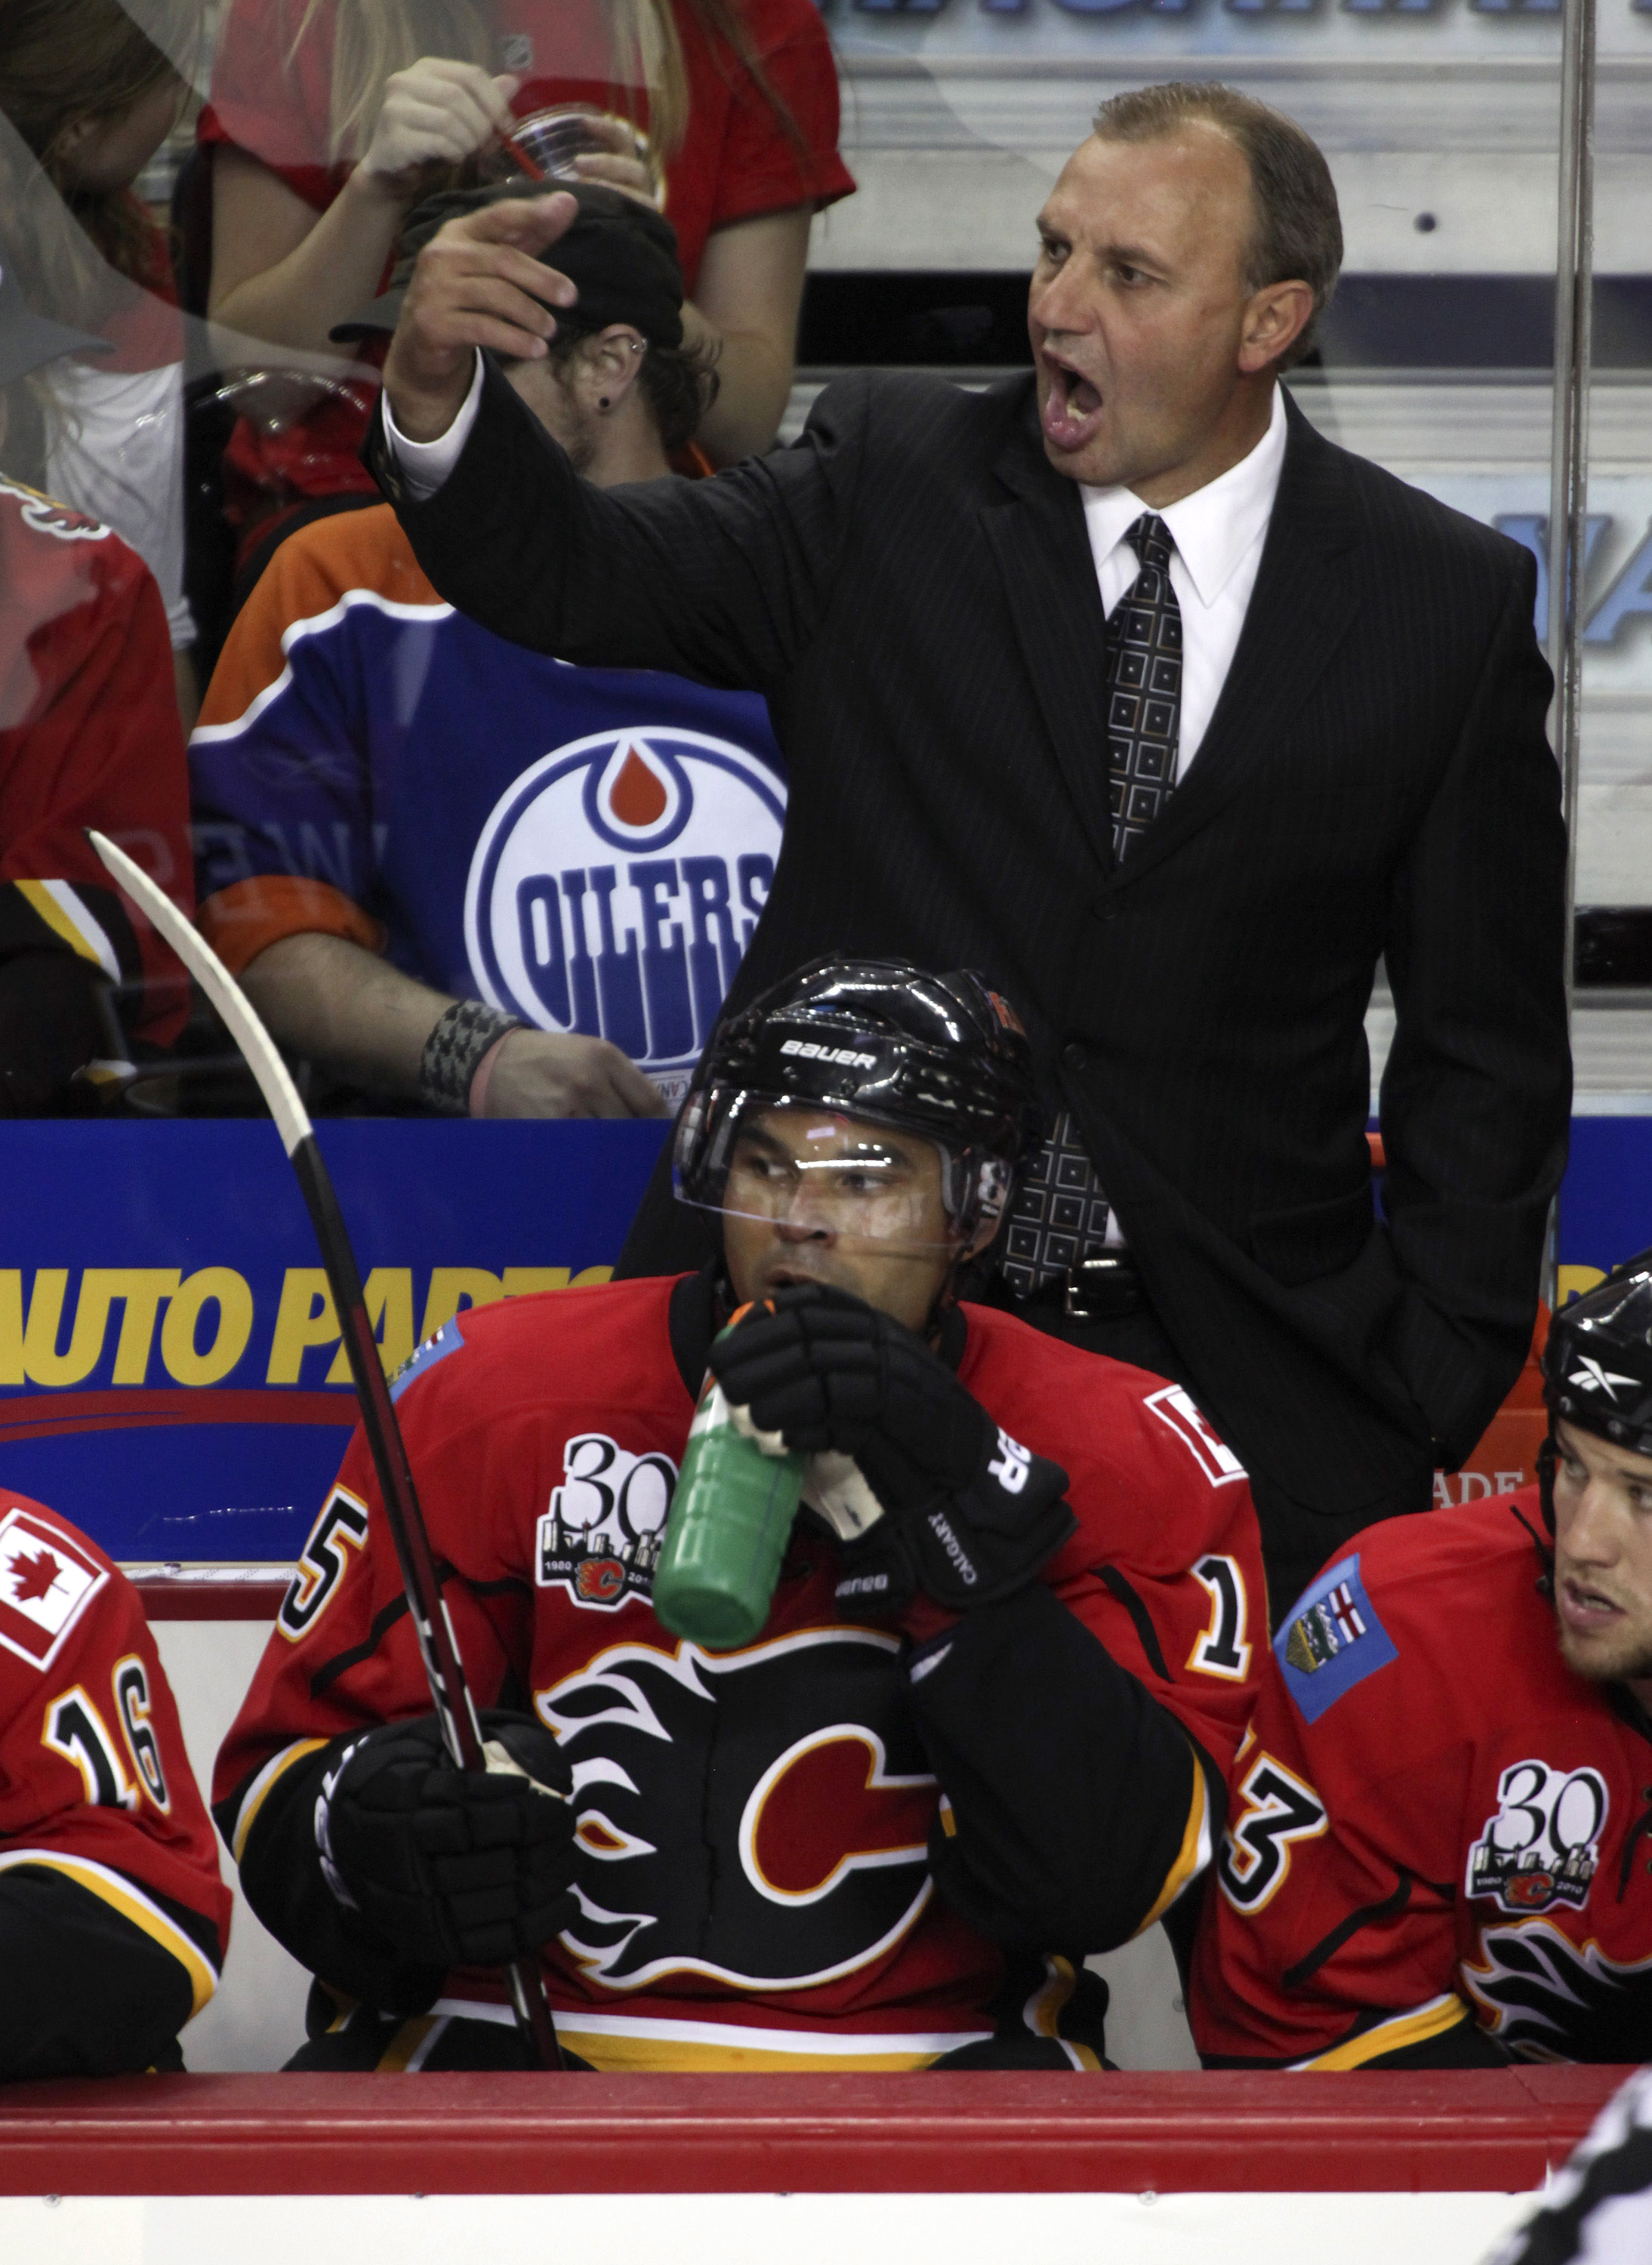 CALGARY, CANADA - SEPTEMBER 15: Head coach Brent Sutter of the Calgary Flames yells from the bench during the third period against the Edmonton Oilers in NHL preseason action on September 15, 2009 at the Pengrowth Saddledome in Calgary, Alberta, Canada. (